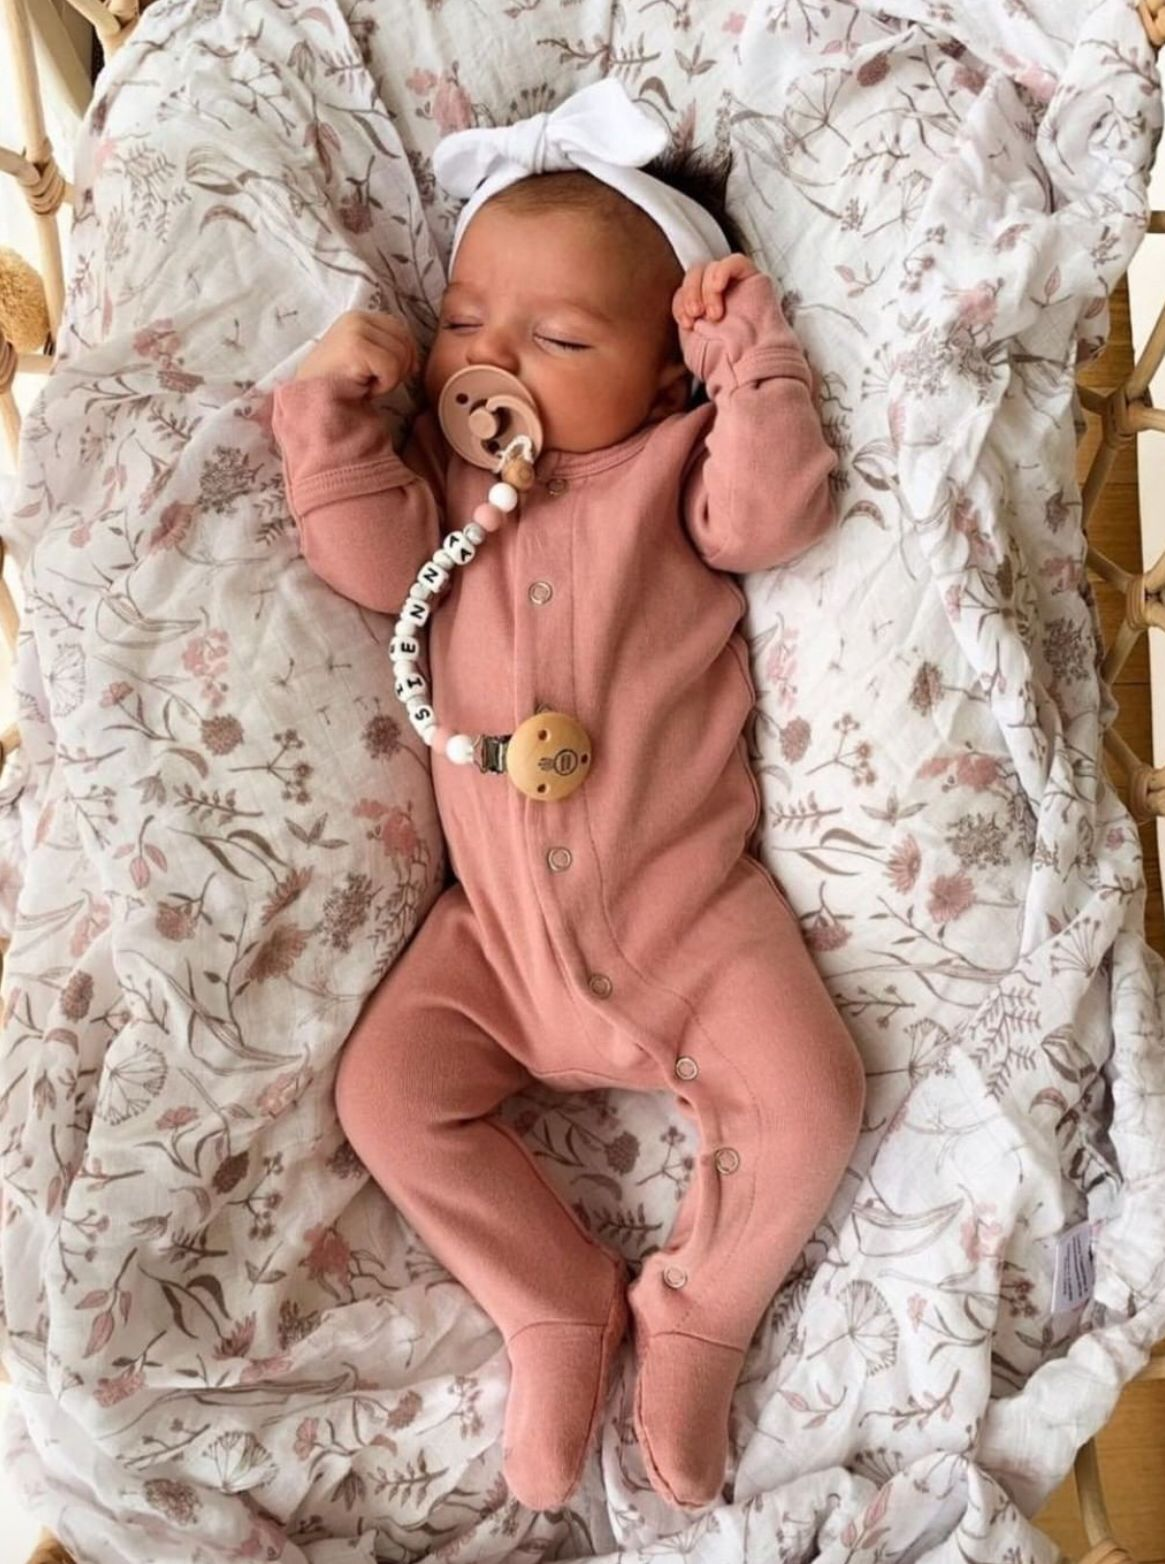 Pin By Victoria Haynes On Bubas Cute Baby Pictures Girl New Products